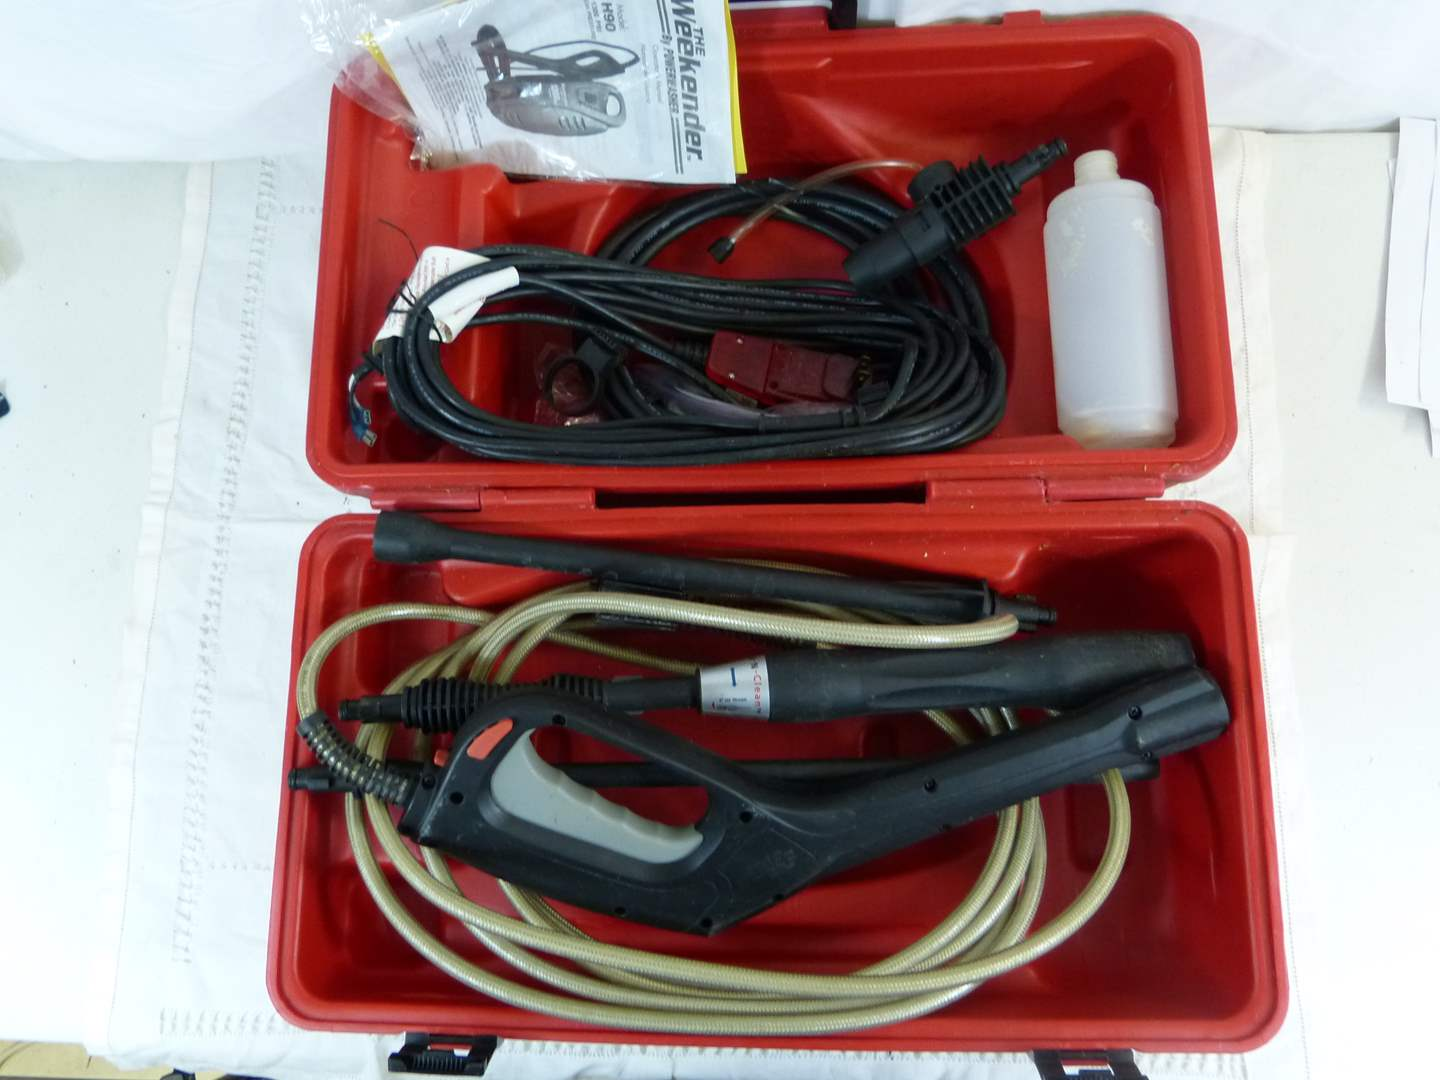 Lot # 150 Accessory kit for electric power washer with case (main image)